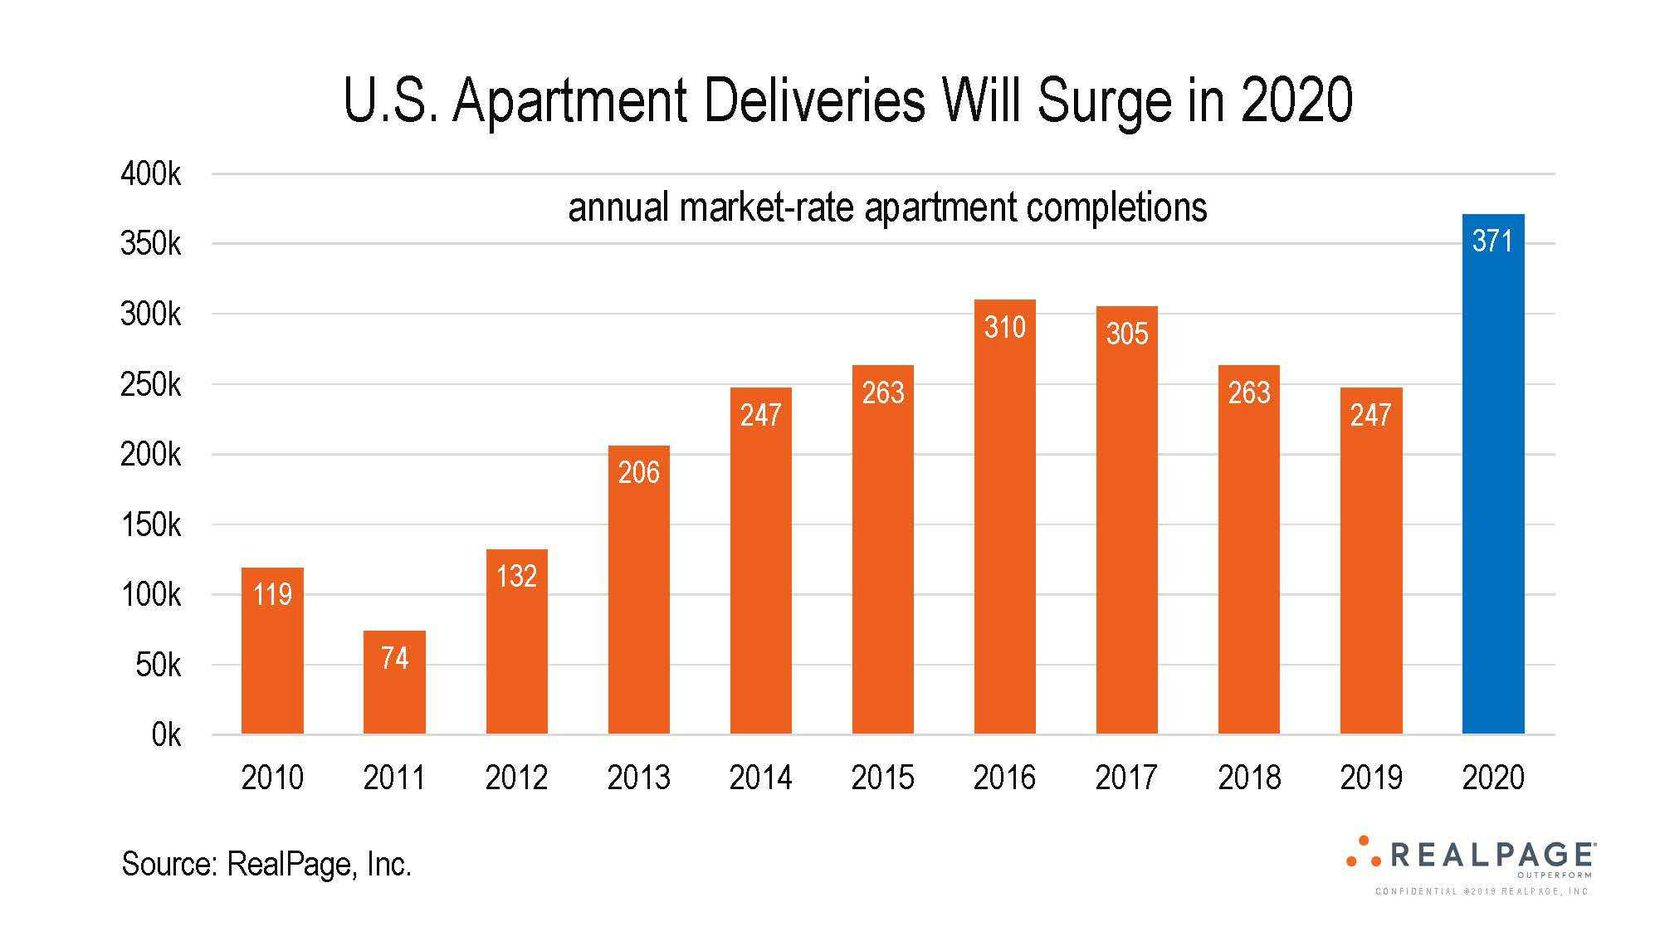 Nationwide apartment completions are expected to rise 50% this year.